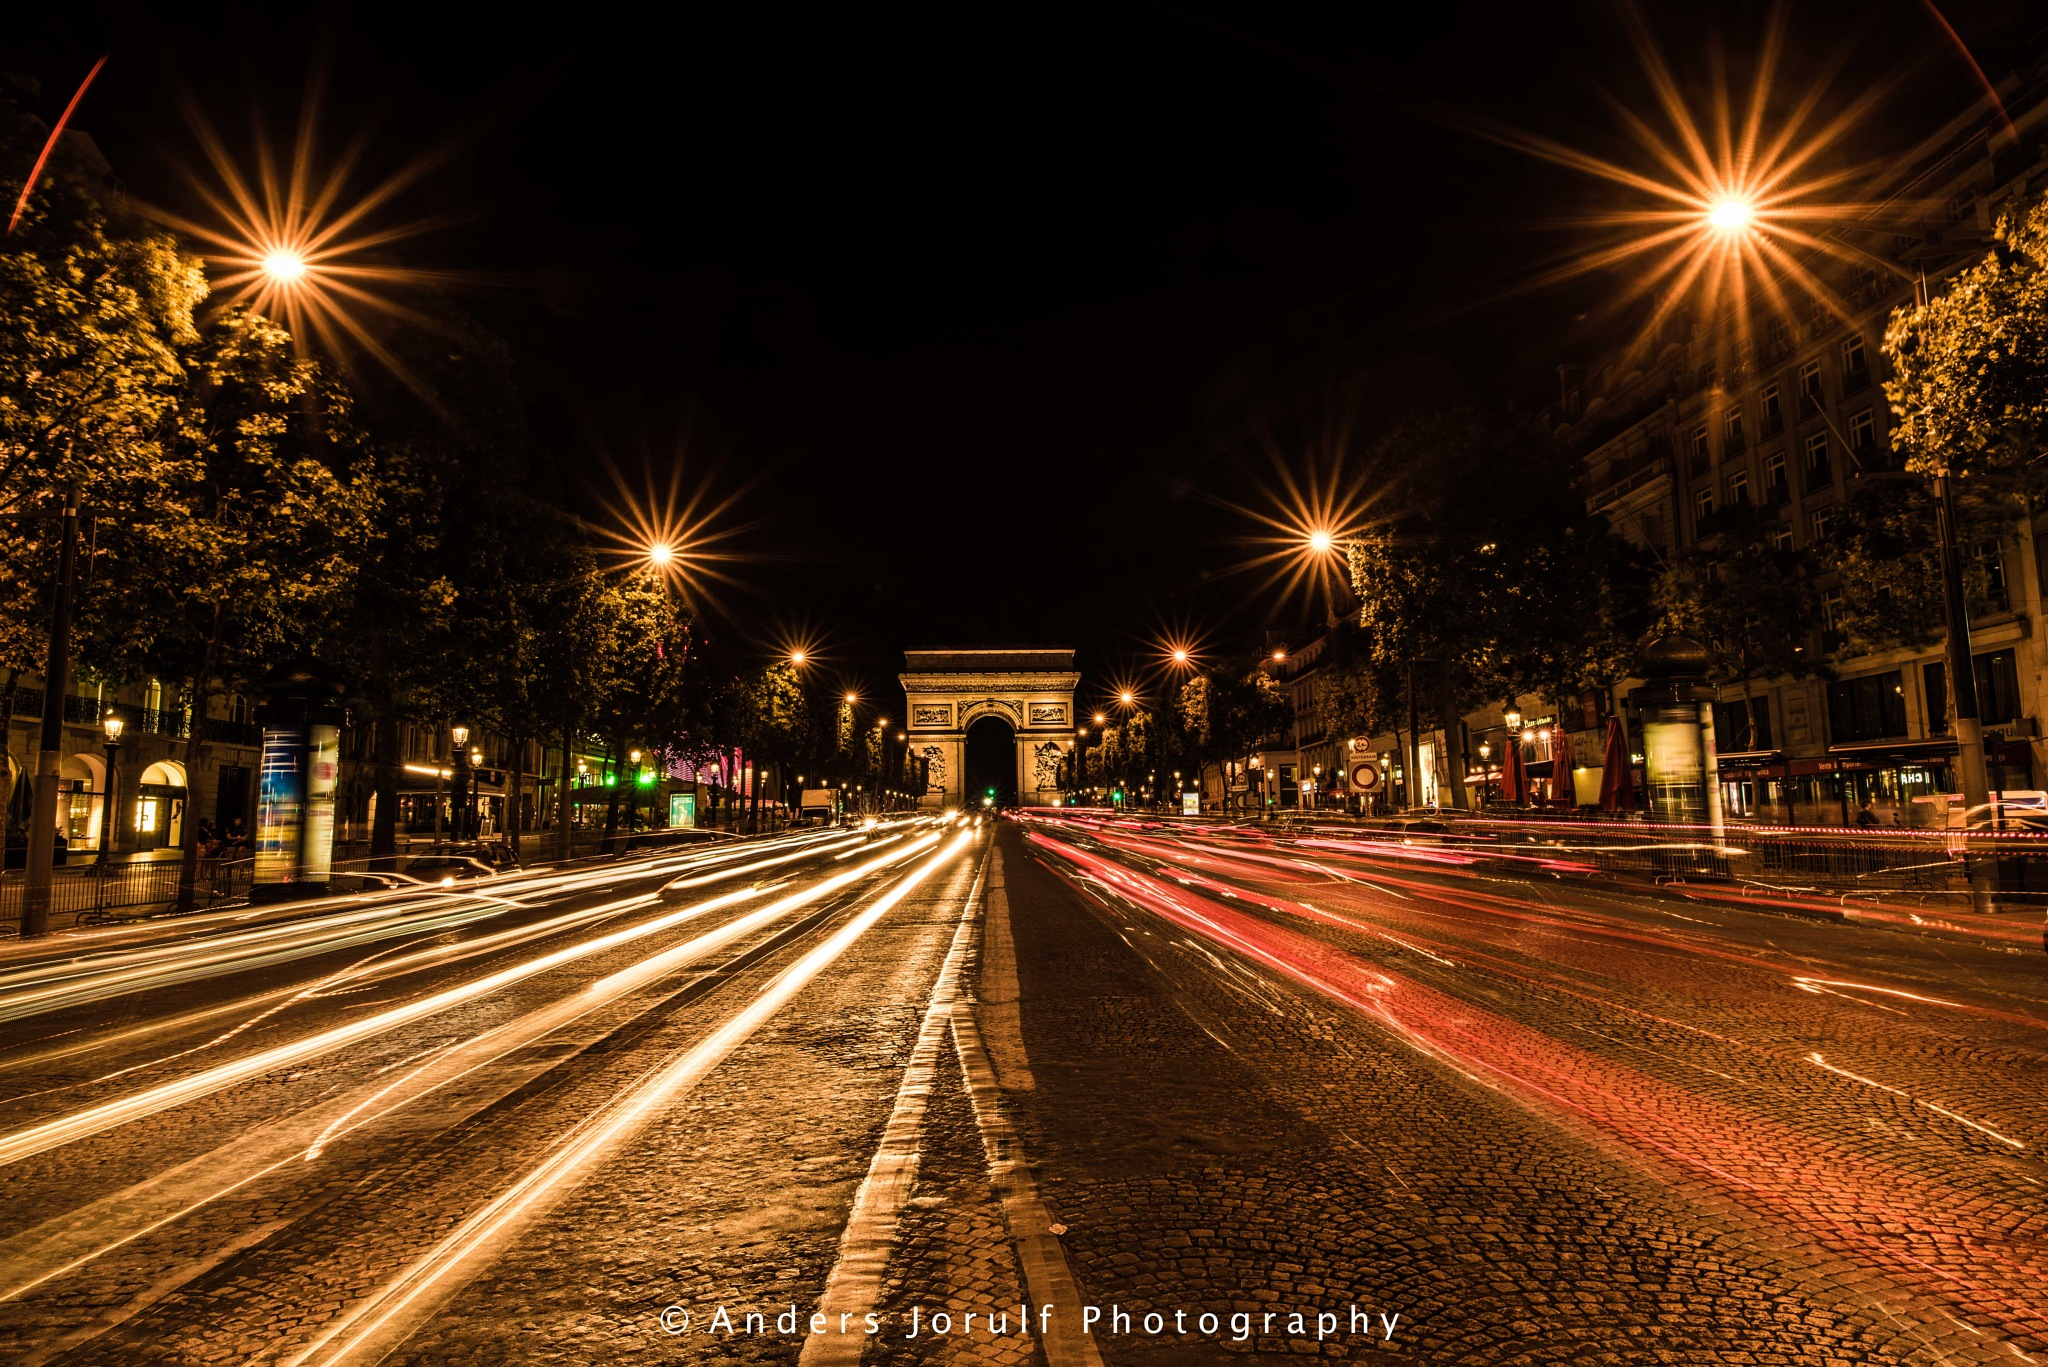 The road to Paris by Anders Jorulf